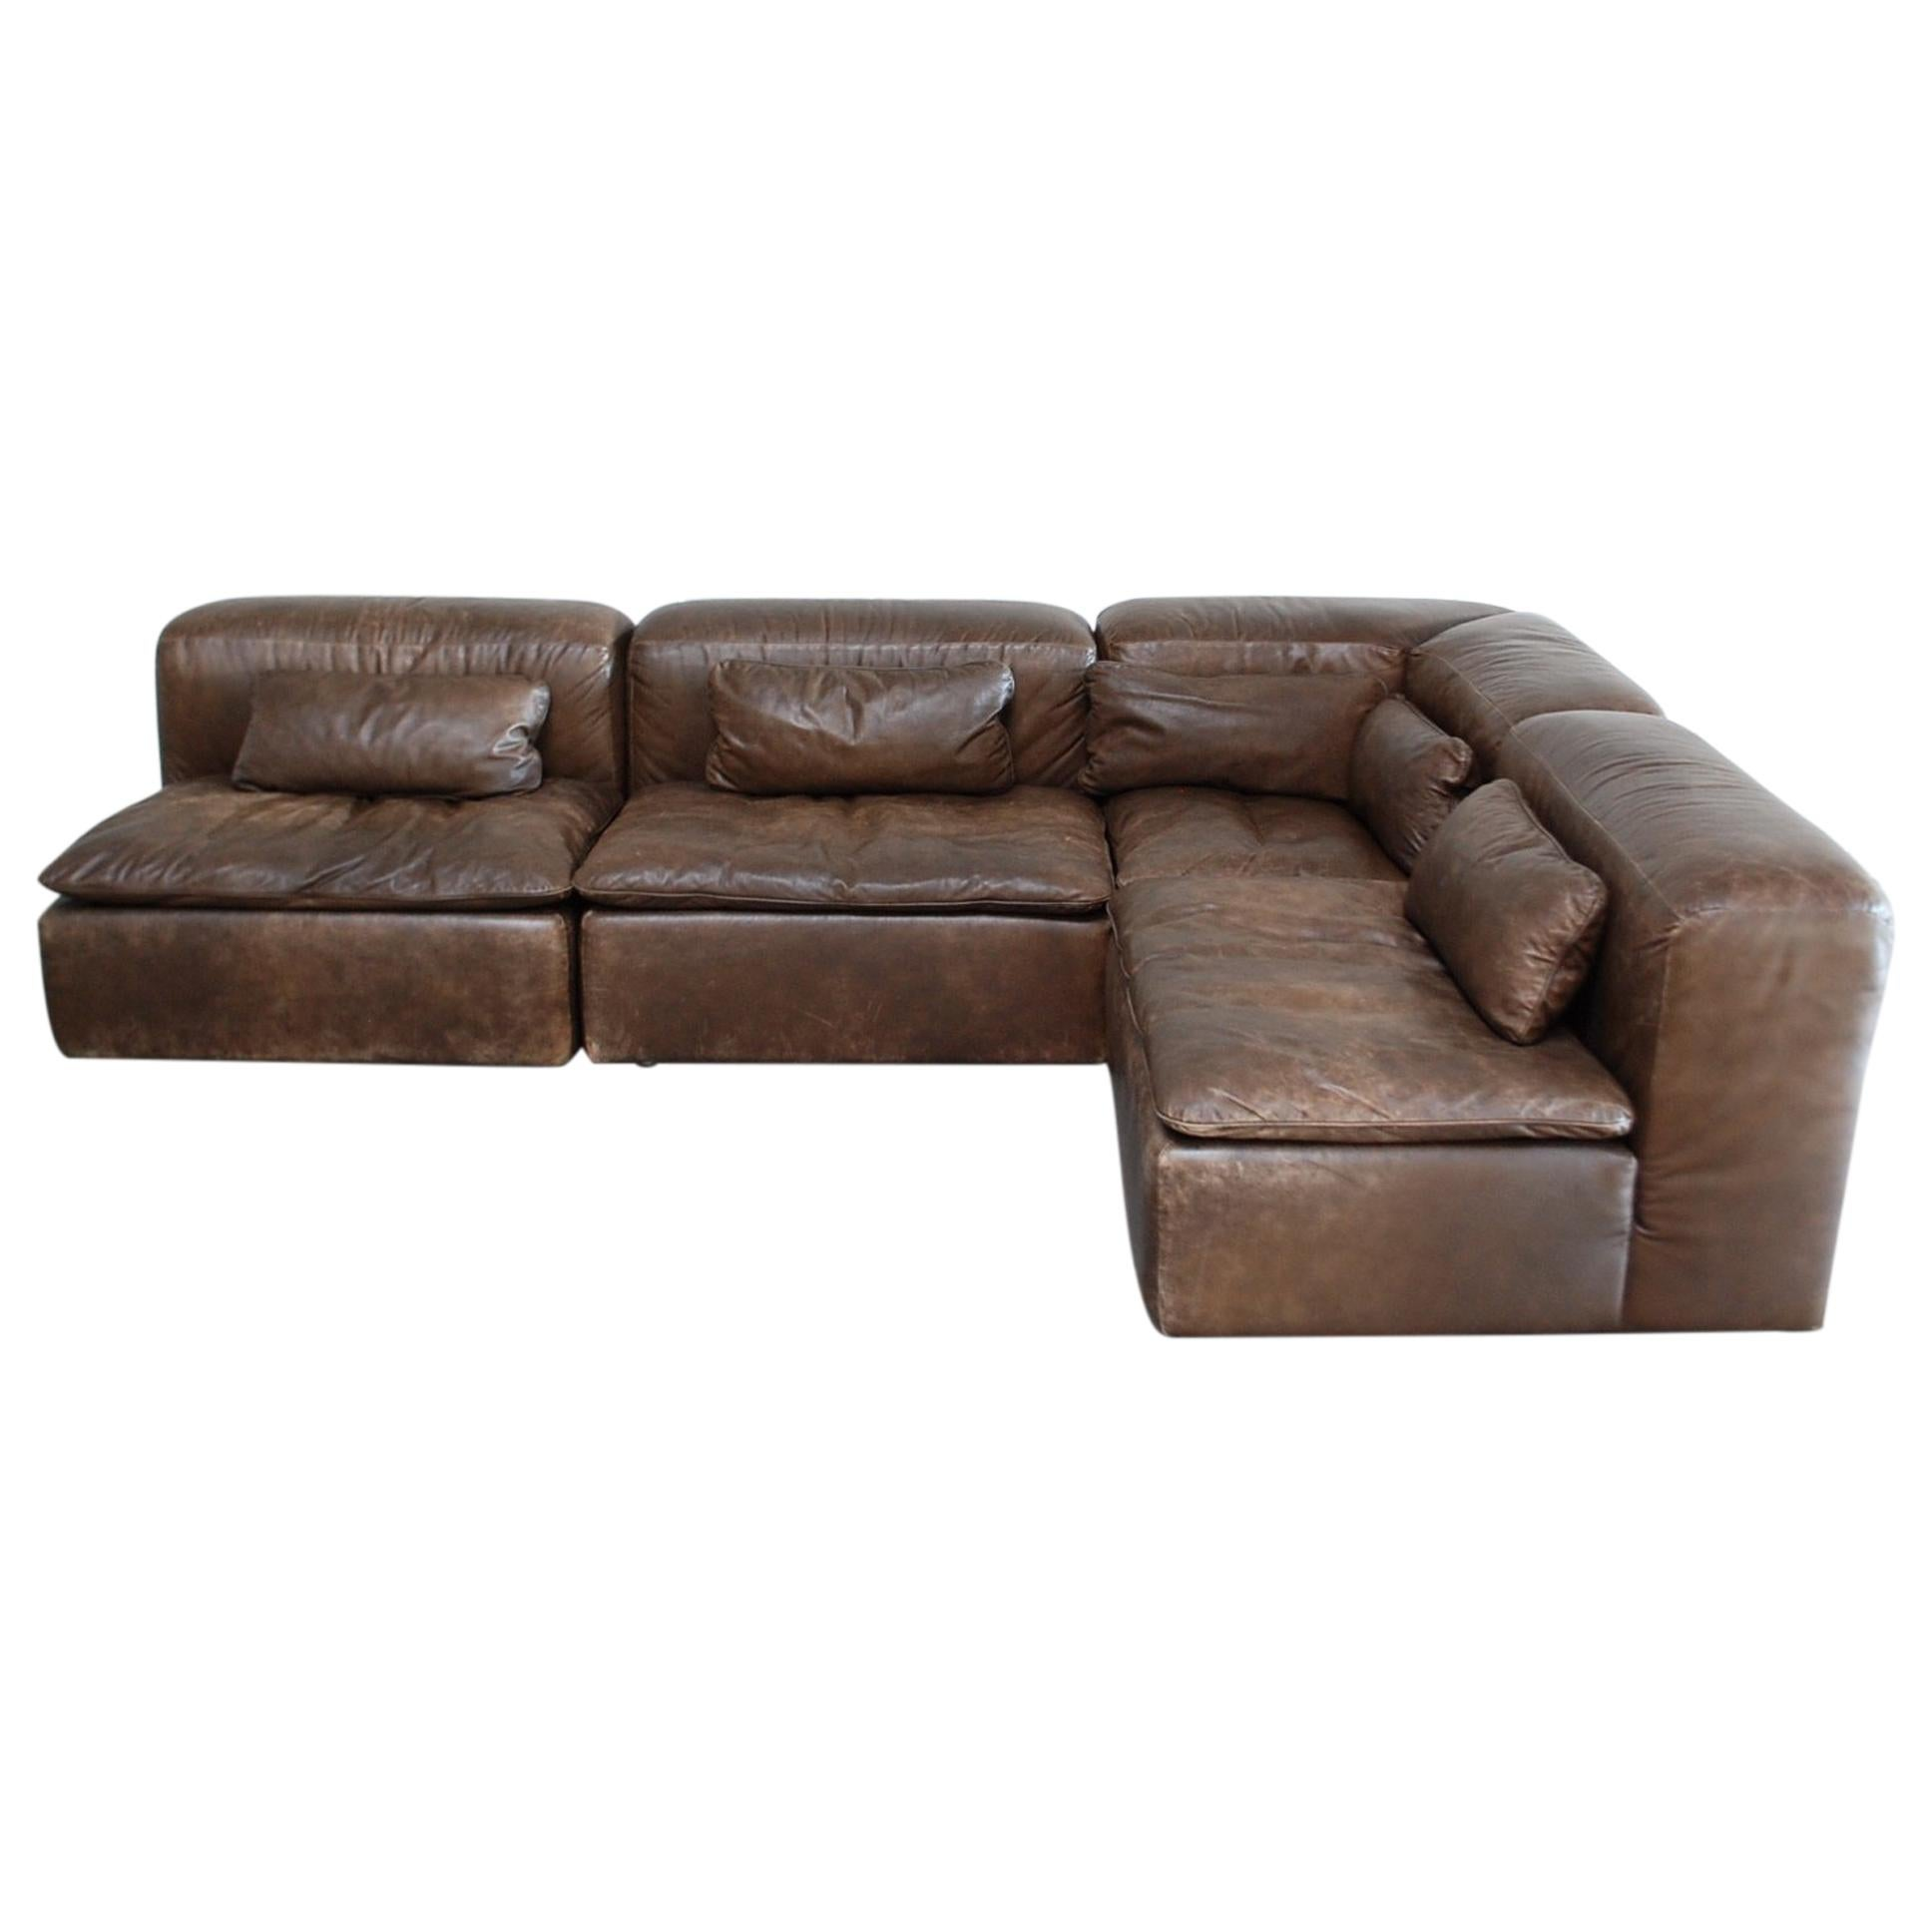 Naturmöbel Sofa Wk Möbel Model Wk 550 Vintage Leather Sofa Brown By Ernst Martin Dettinger